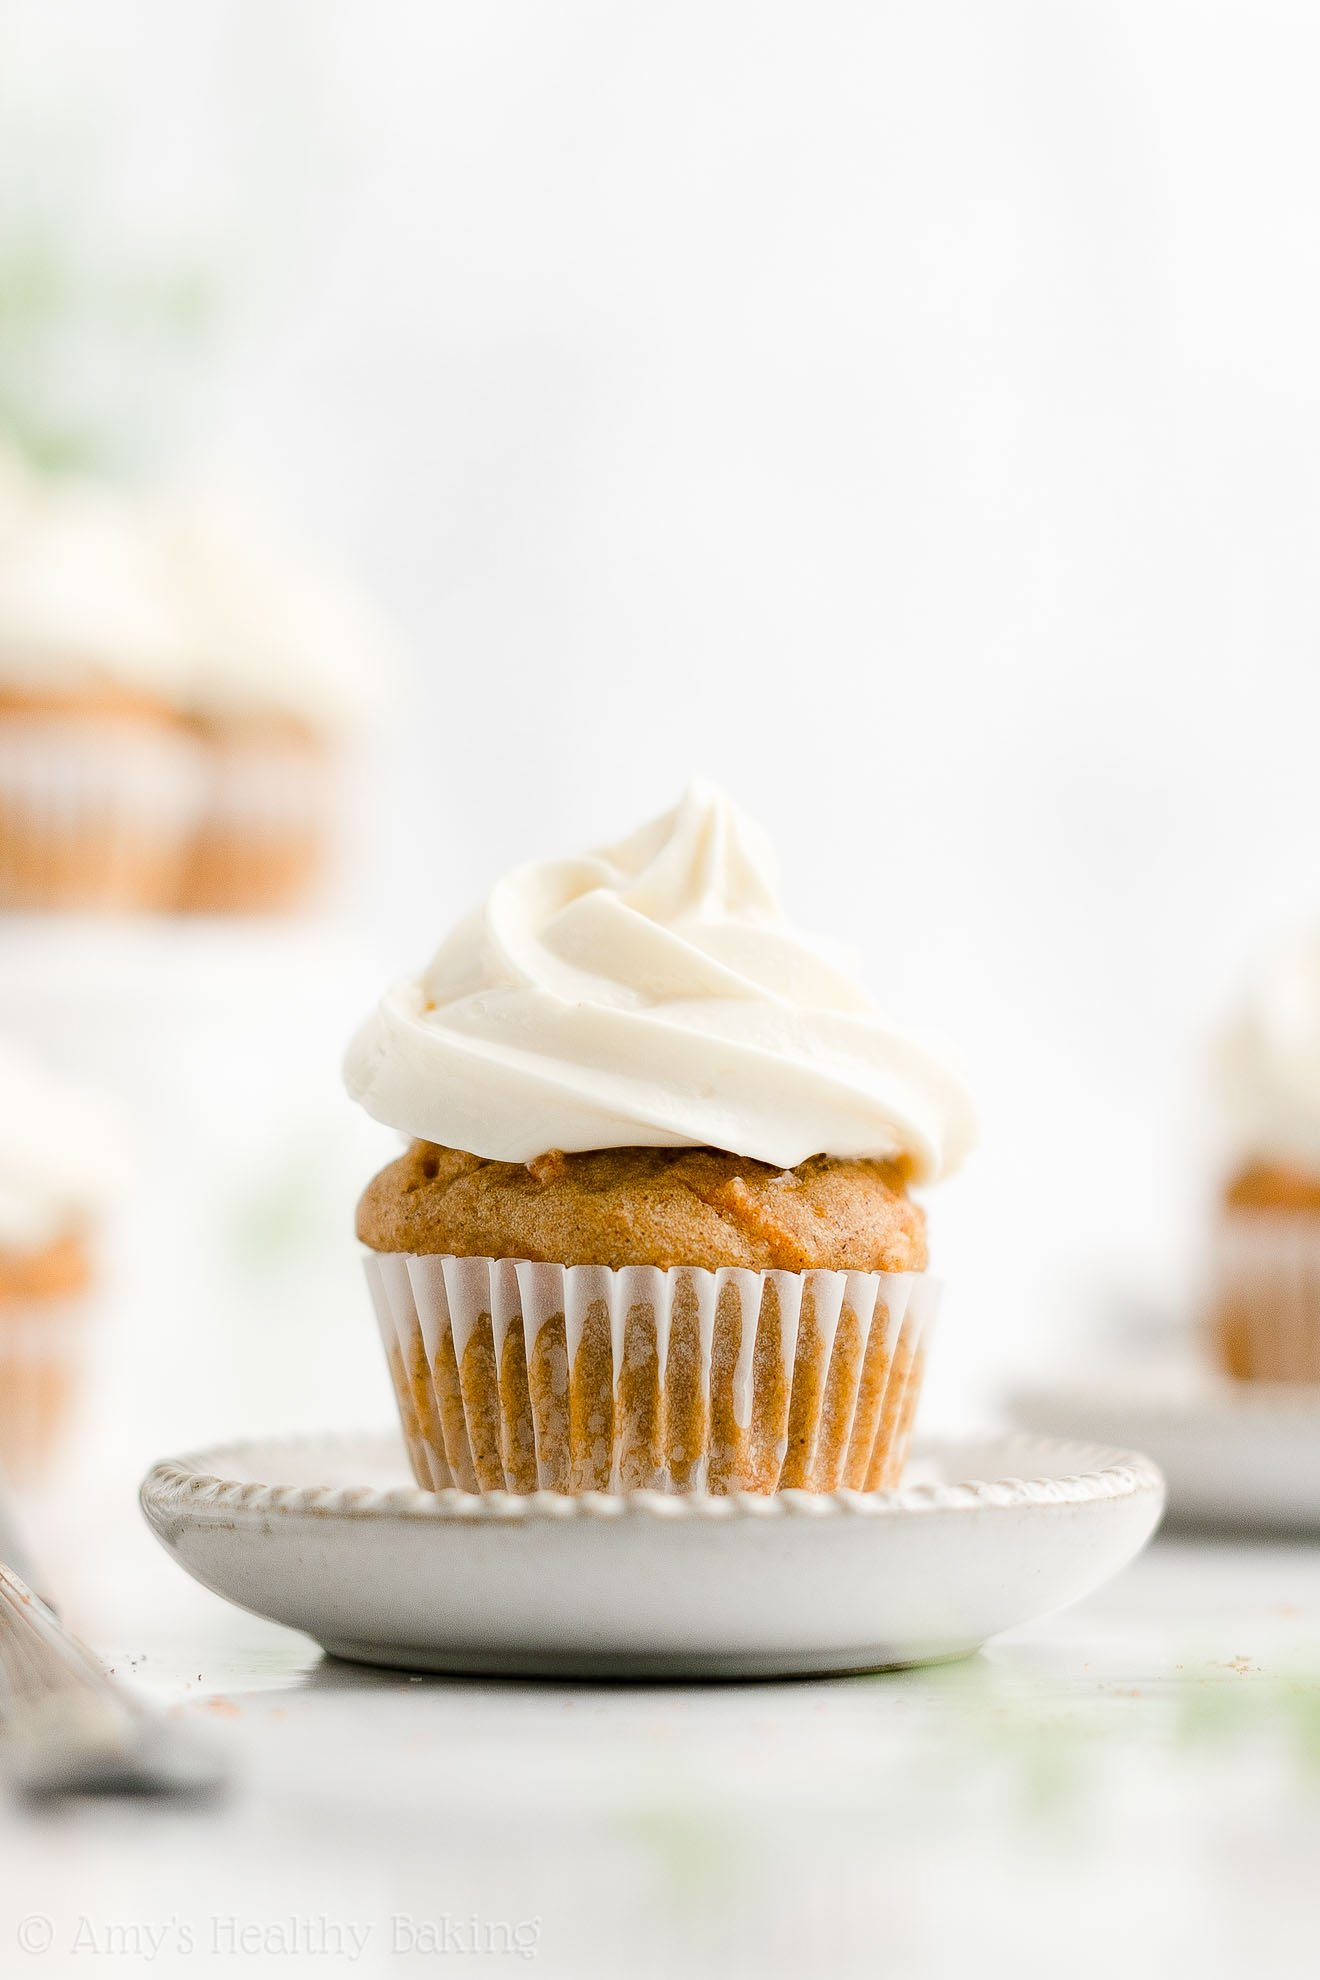 ULTIMATE Easy Healthy Whole Wheat Sugar Free Low Fat Mini Carrot Cake Cupcakes